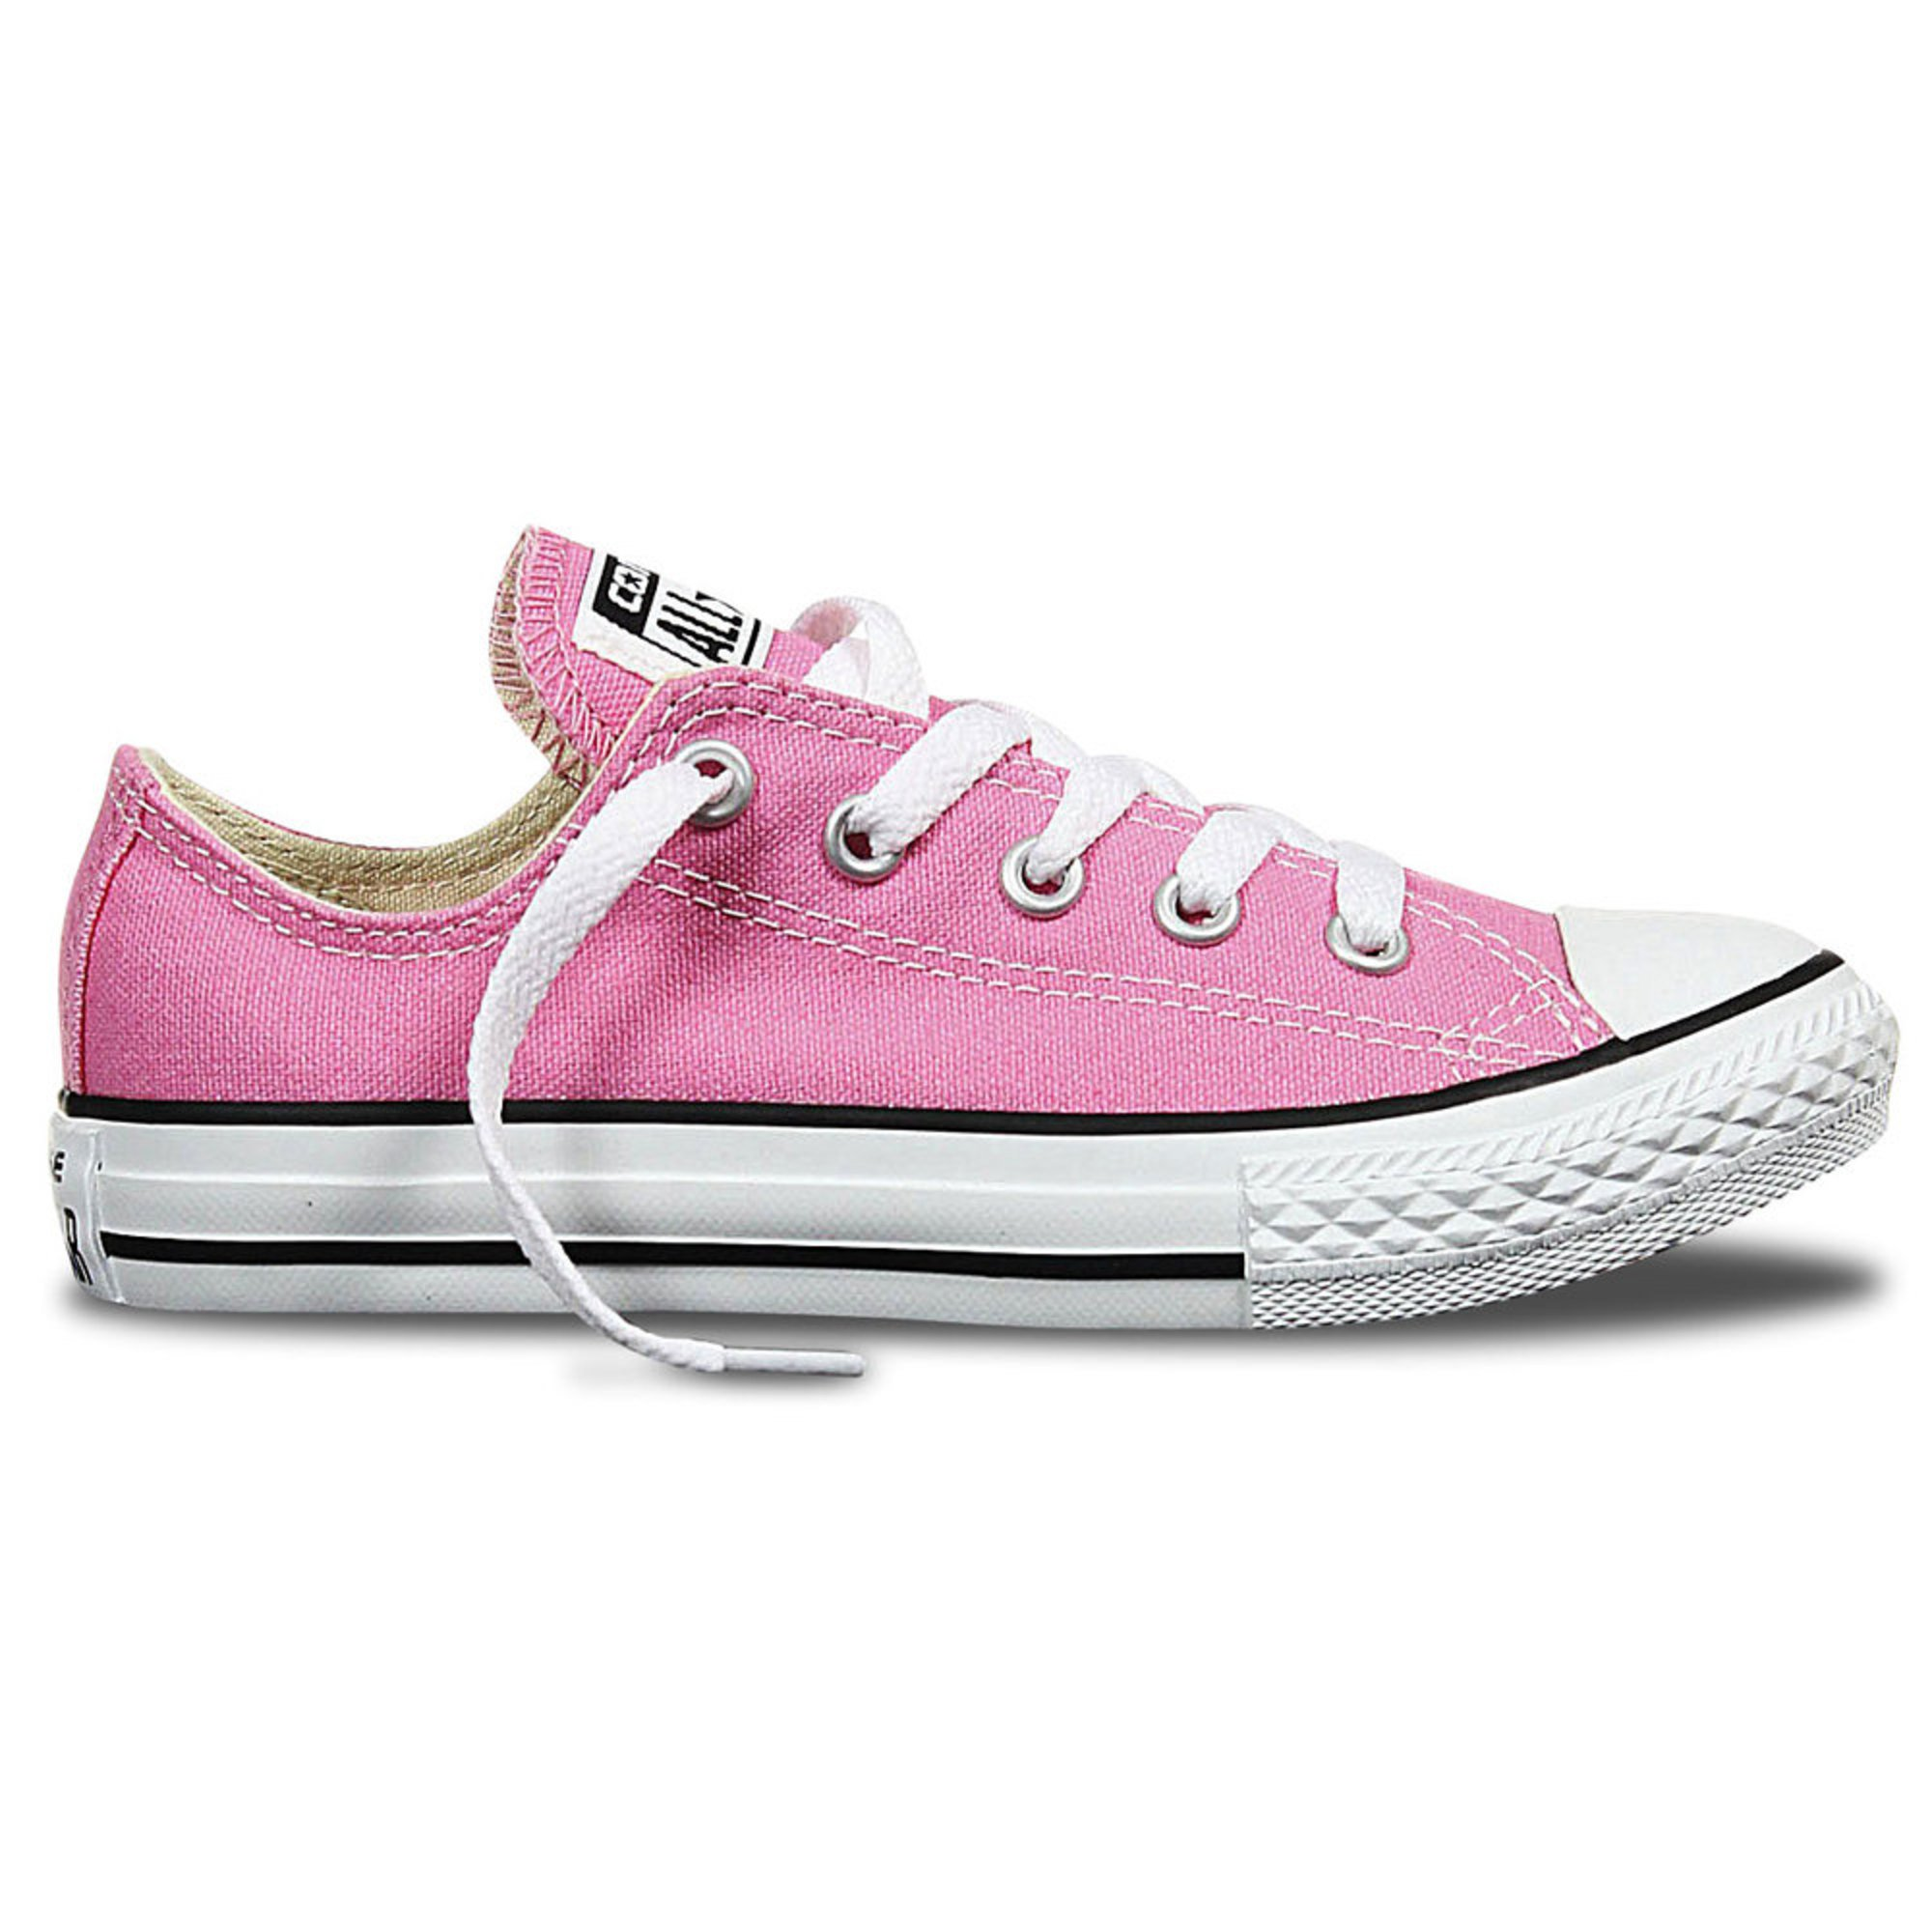 62a99b7062f7 Converse. Converse Girls Chuck Taylor All Star Hi Top Sneaker (Little Kid)